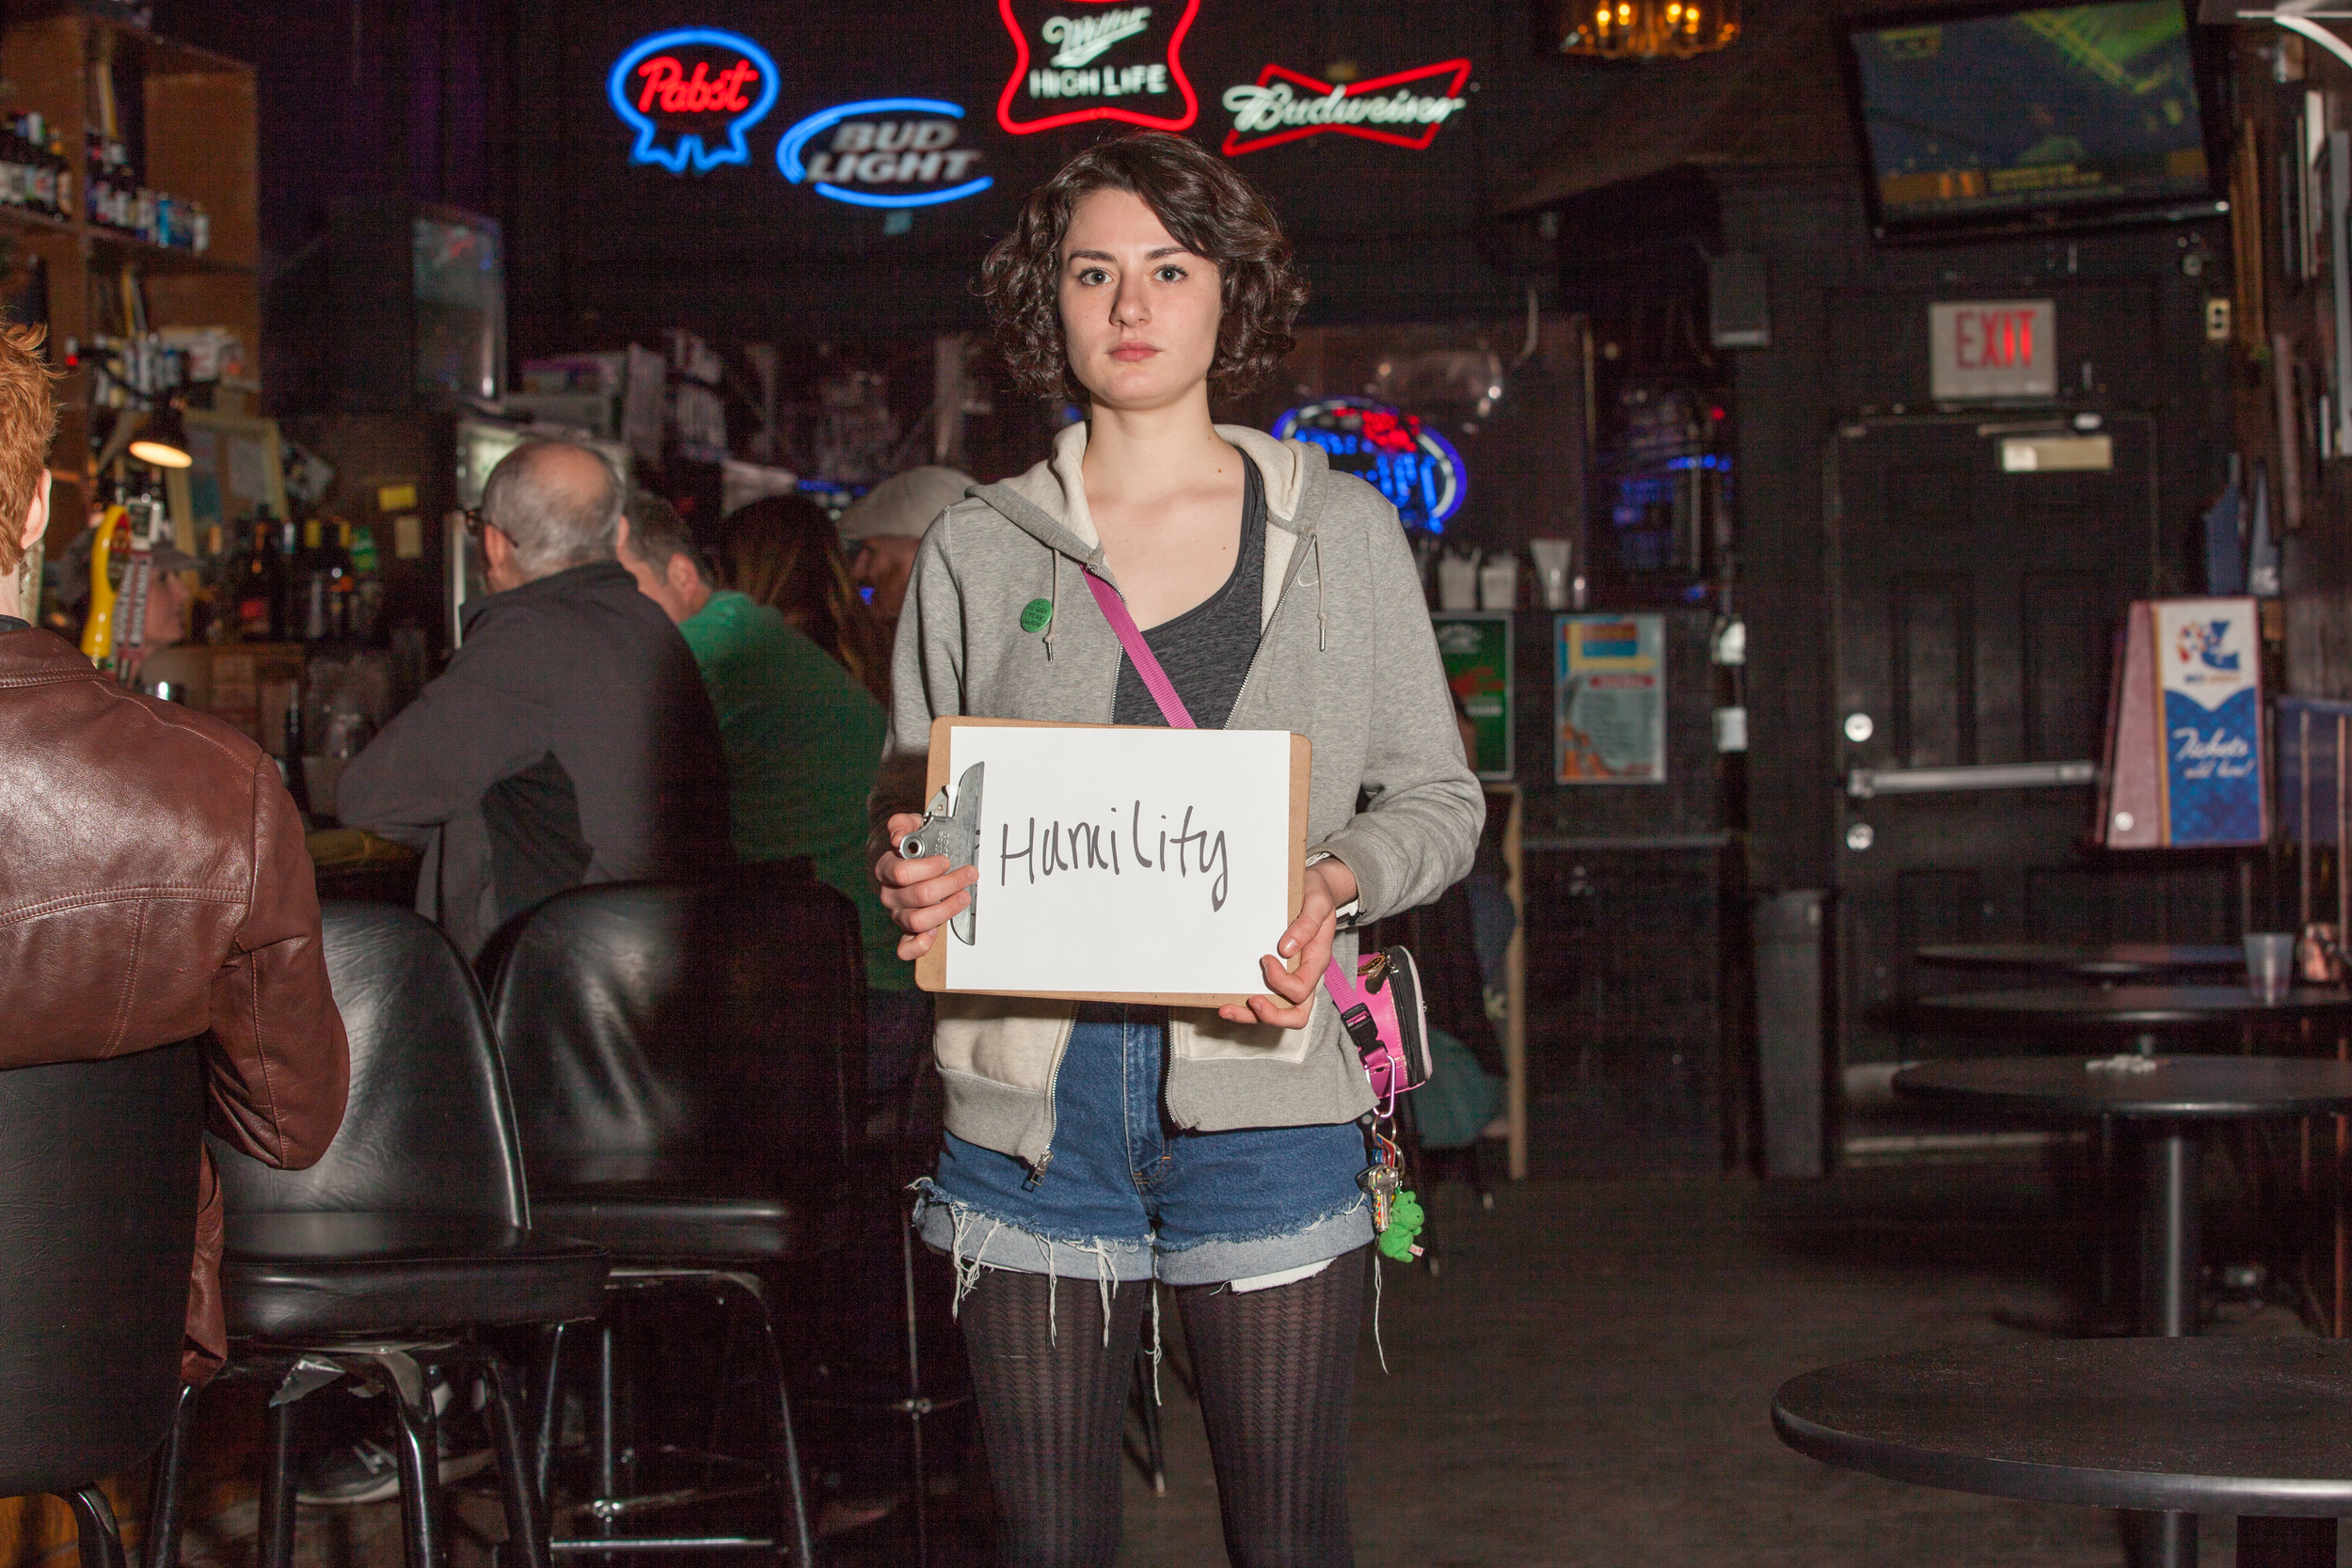 Woman holding a sign in a bar that says humility.